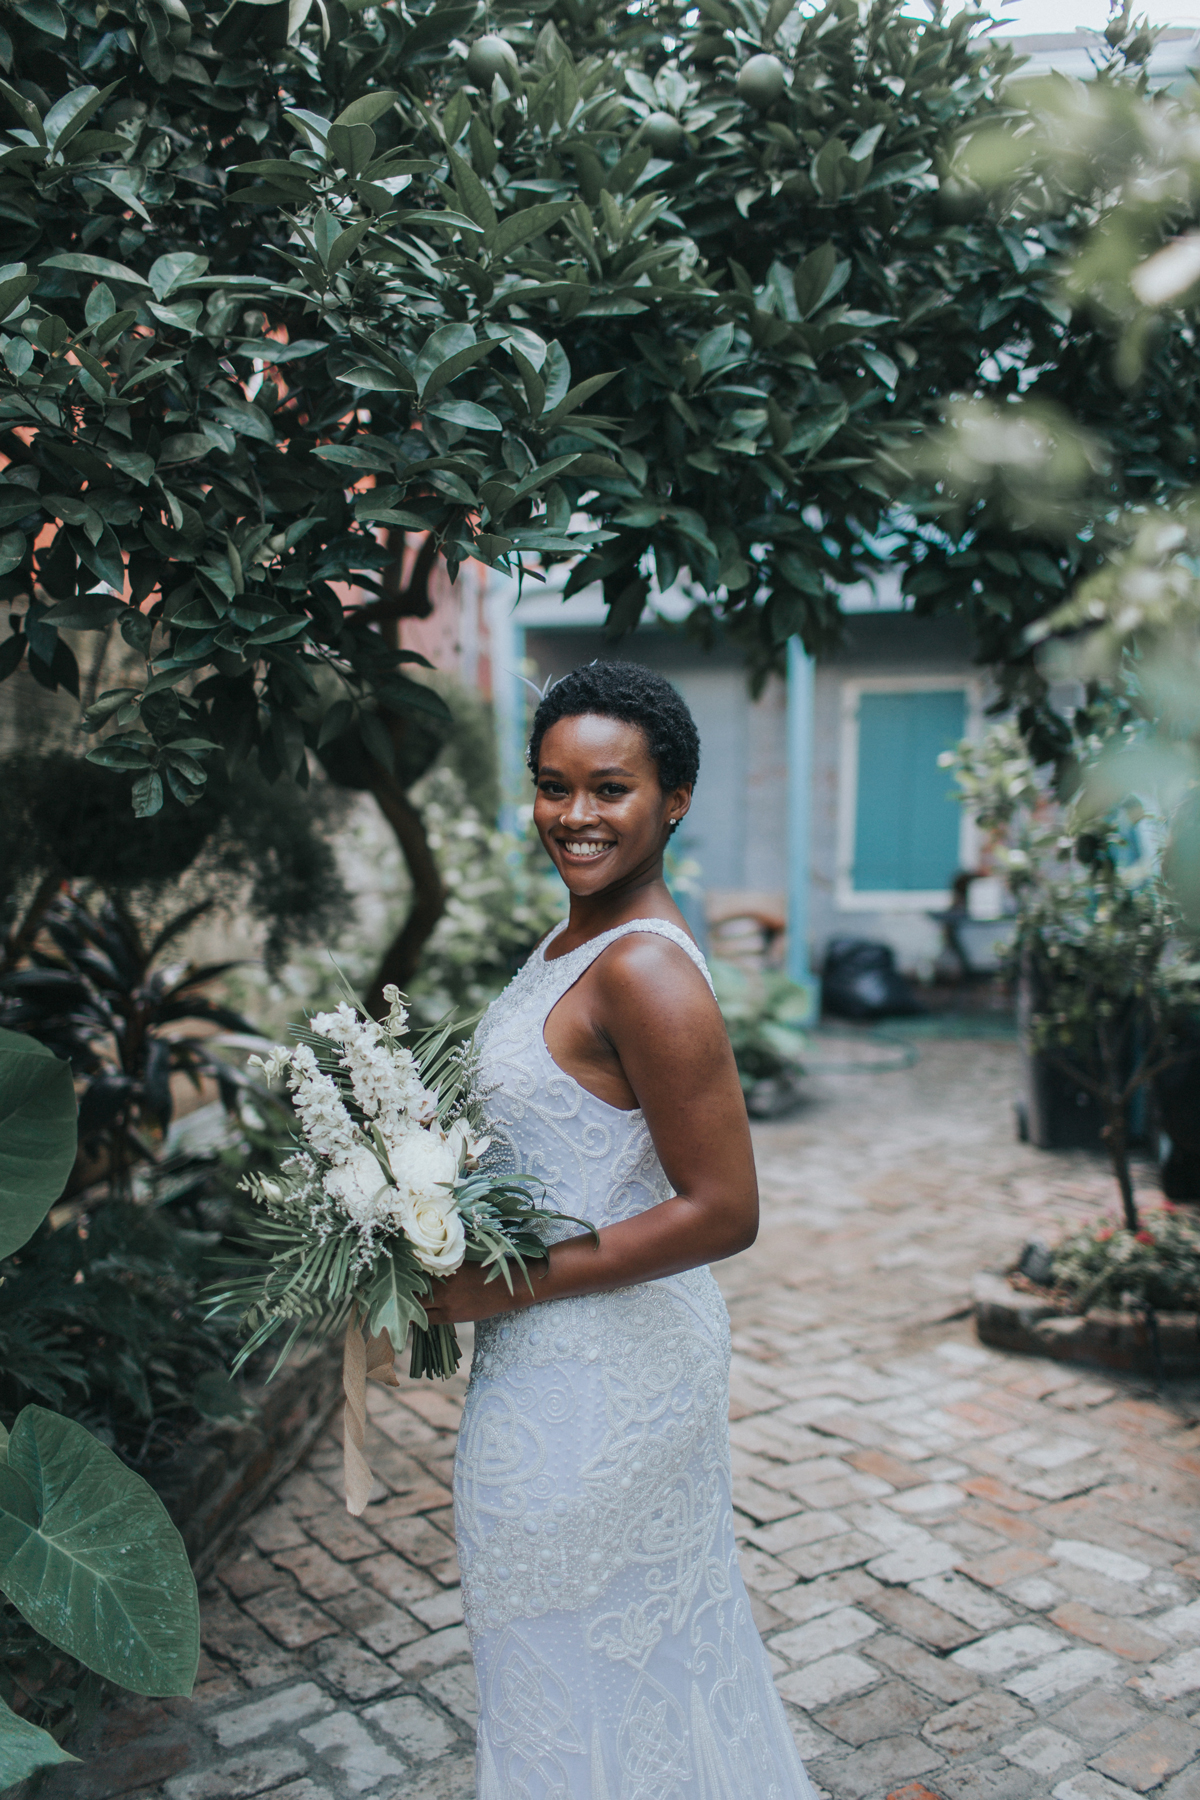 bride wearing beaded gown posing amongst greenery